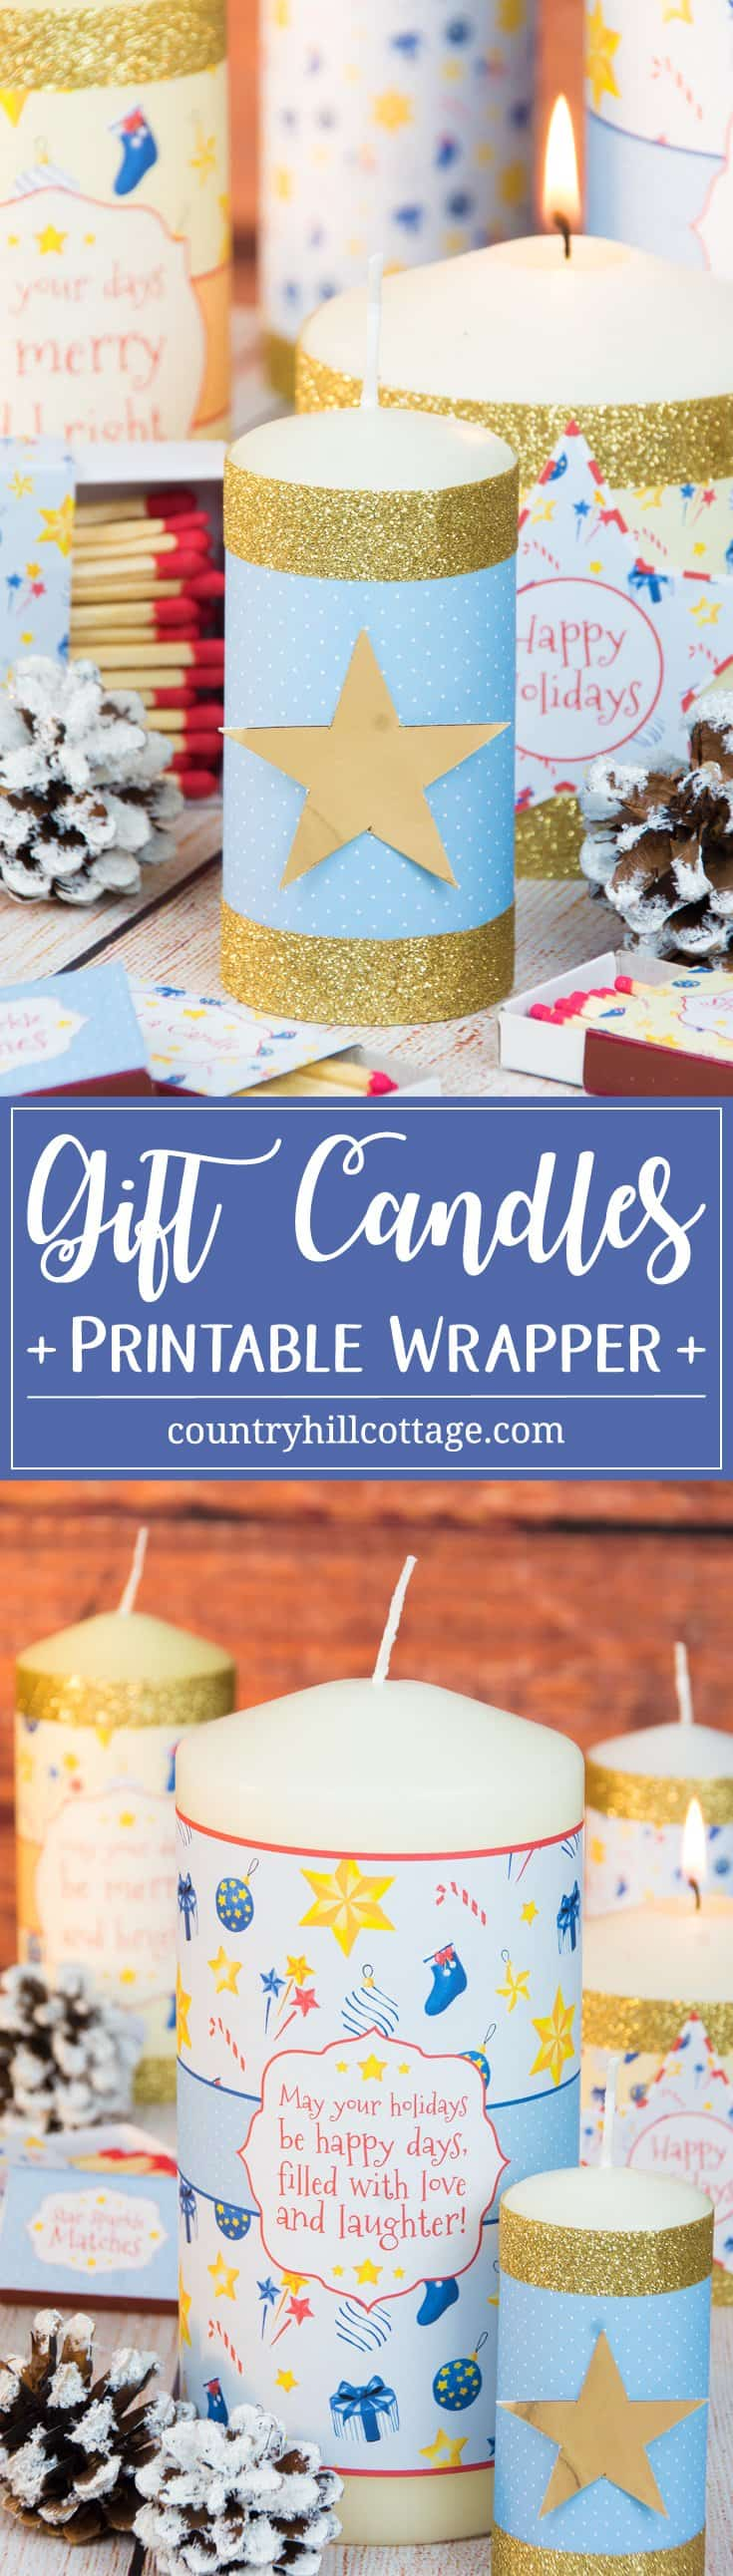 Make pretty gift candles with our free printable candle wrappers and coordinated matchboxes – 5 quick holiday gift giving ideas | countryhillcottage.com